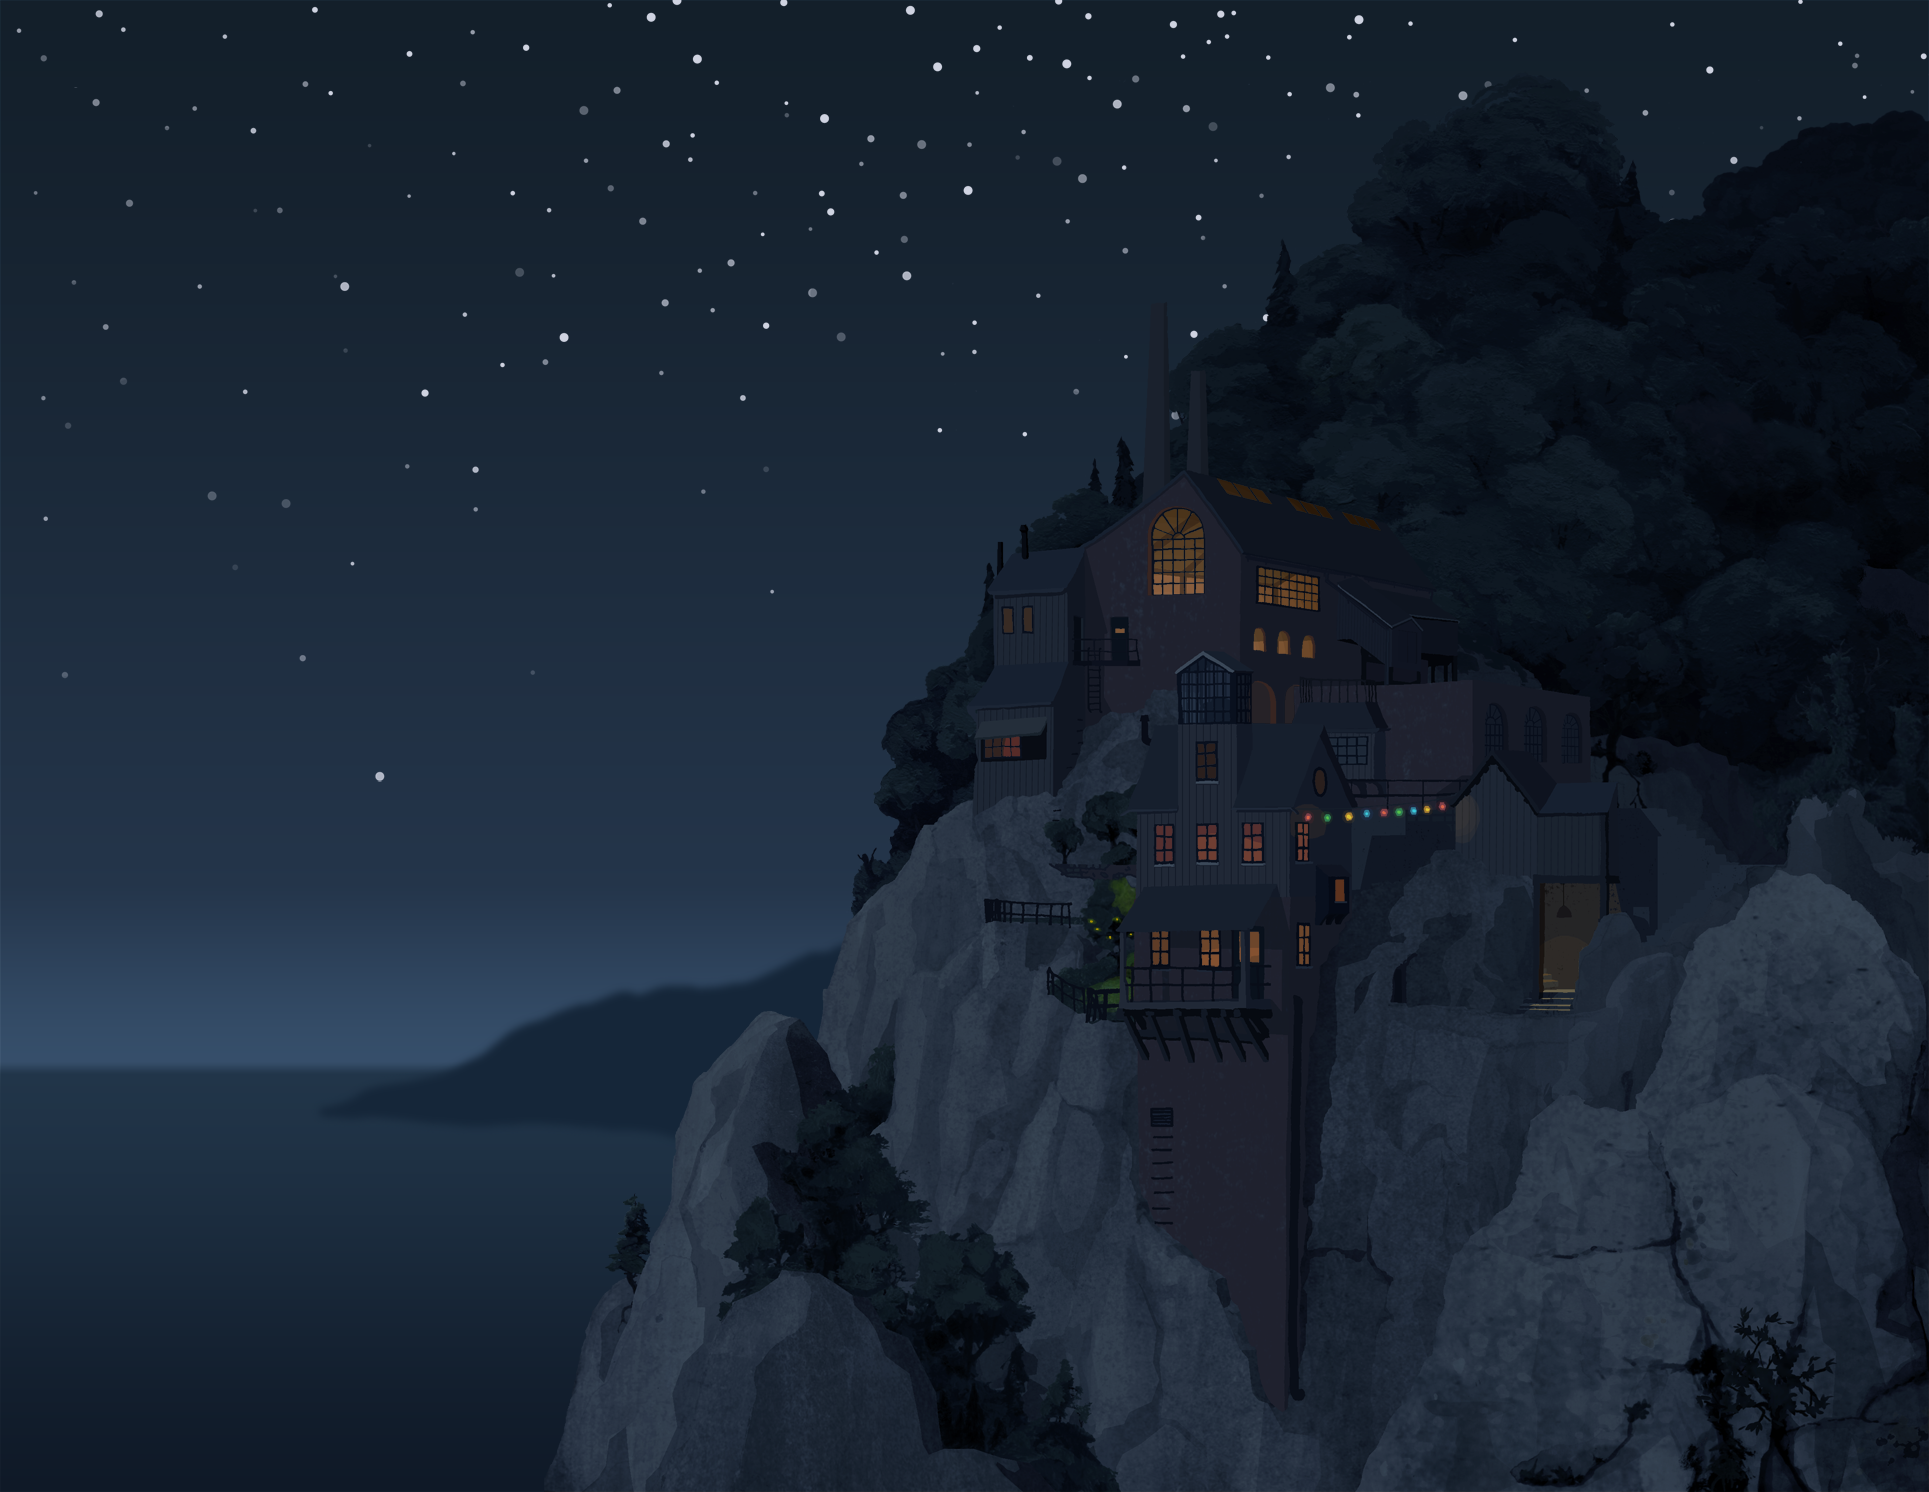 A fictional cliff side, illustrated in a fairly realistic style, stars above, and set into the cliff face is a large factory - our fictional 'good factory' - die gute fabrik